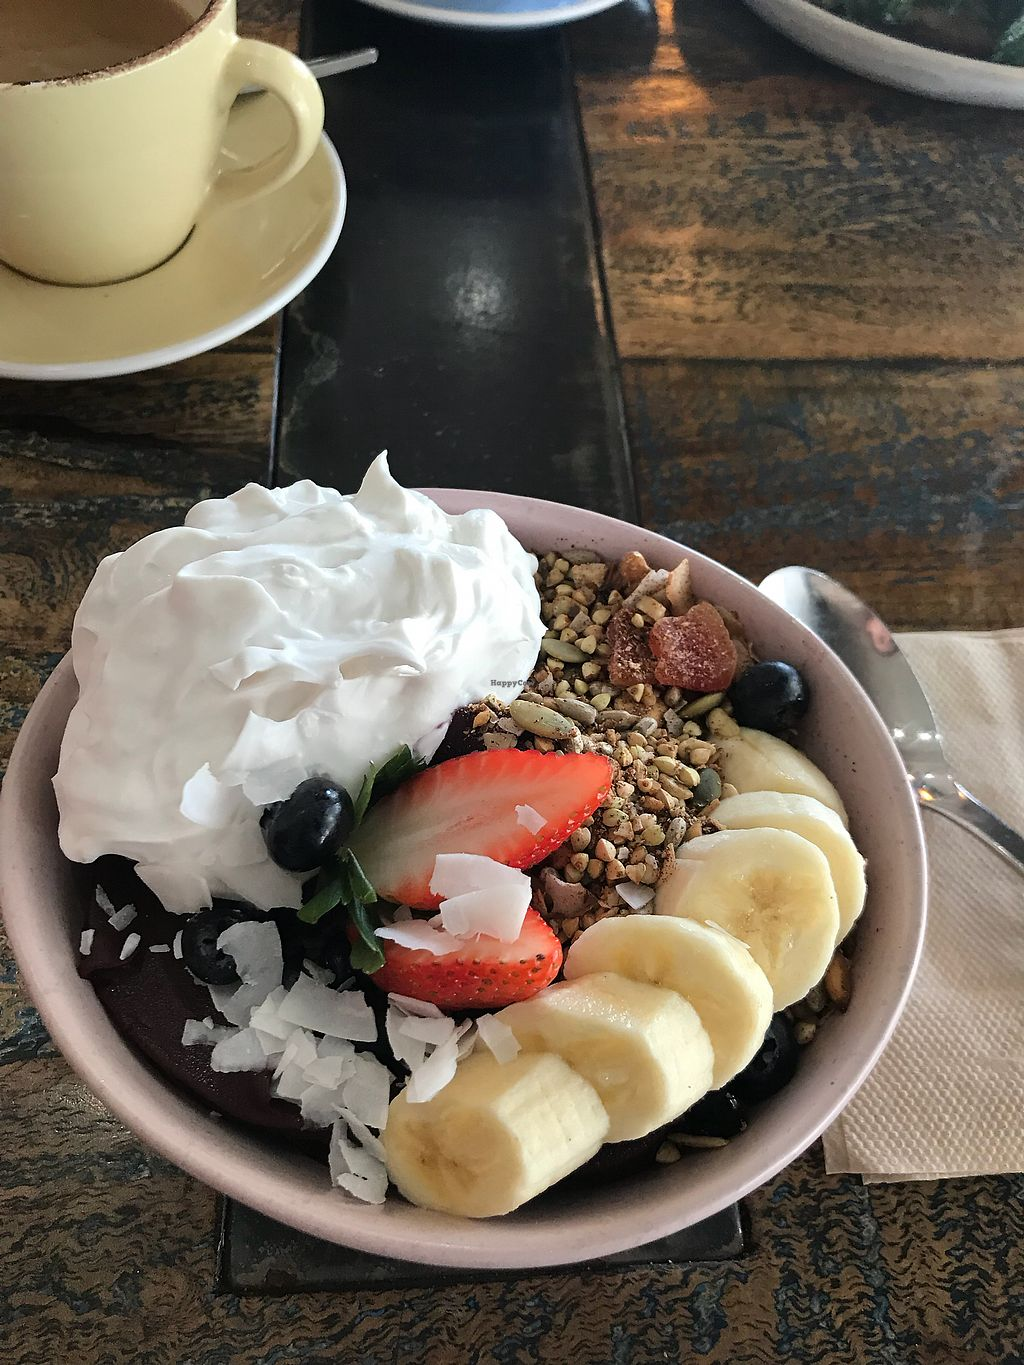 """Photo of Miss Bliss Wholefoods Kitchen  by <a href=""""/members/profile/LolaNachtigall"""">LolaNachtigall</a> <br/>Acai Bowl <br/> April 30, 2018  - <a href='/contact/abuse/image/65037/392978'>Report</a>"""